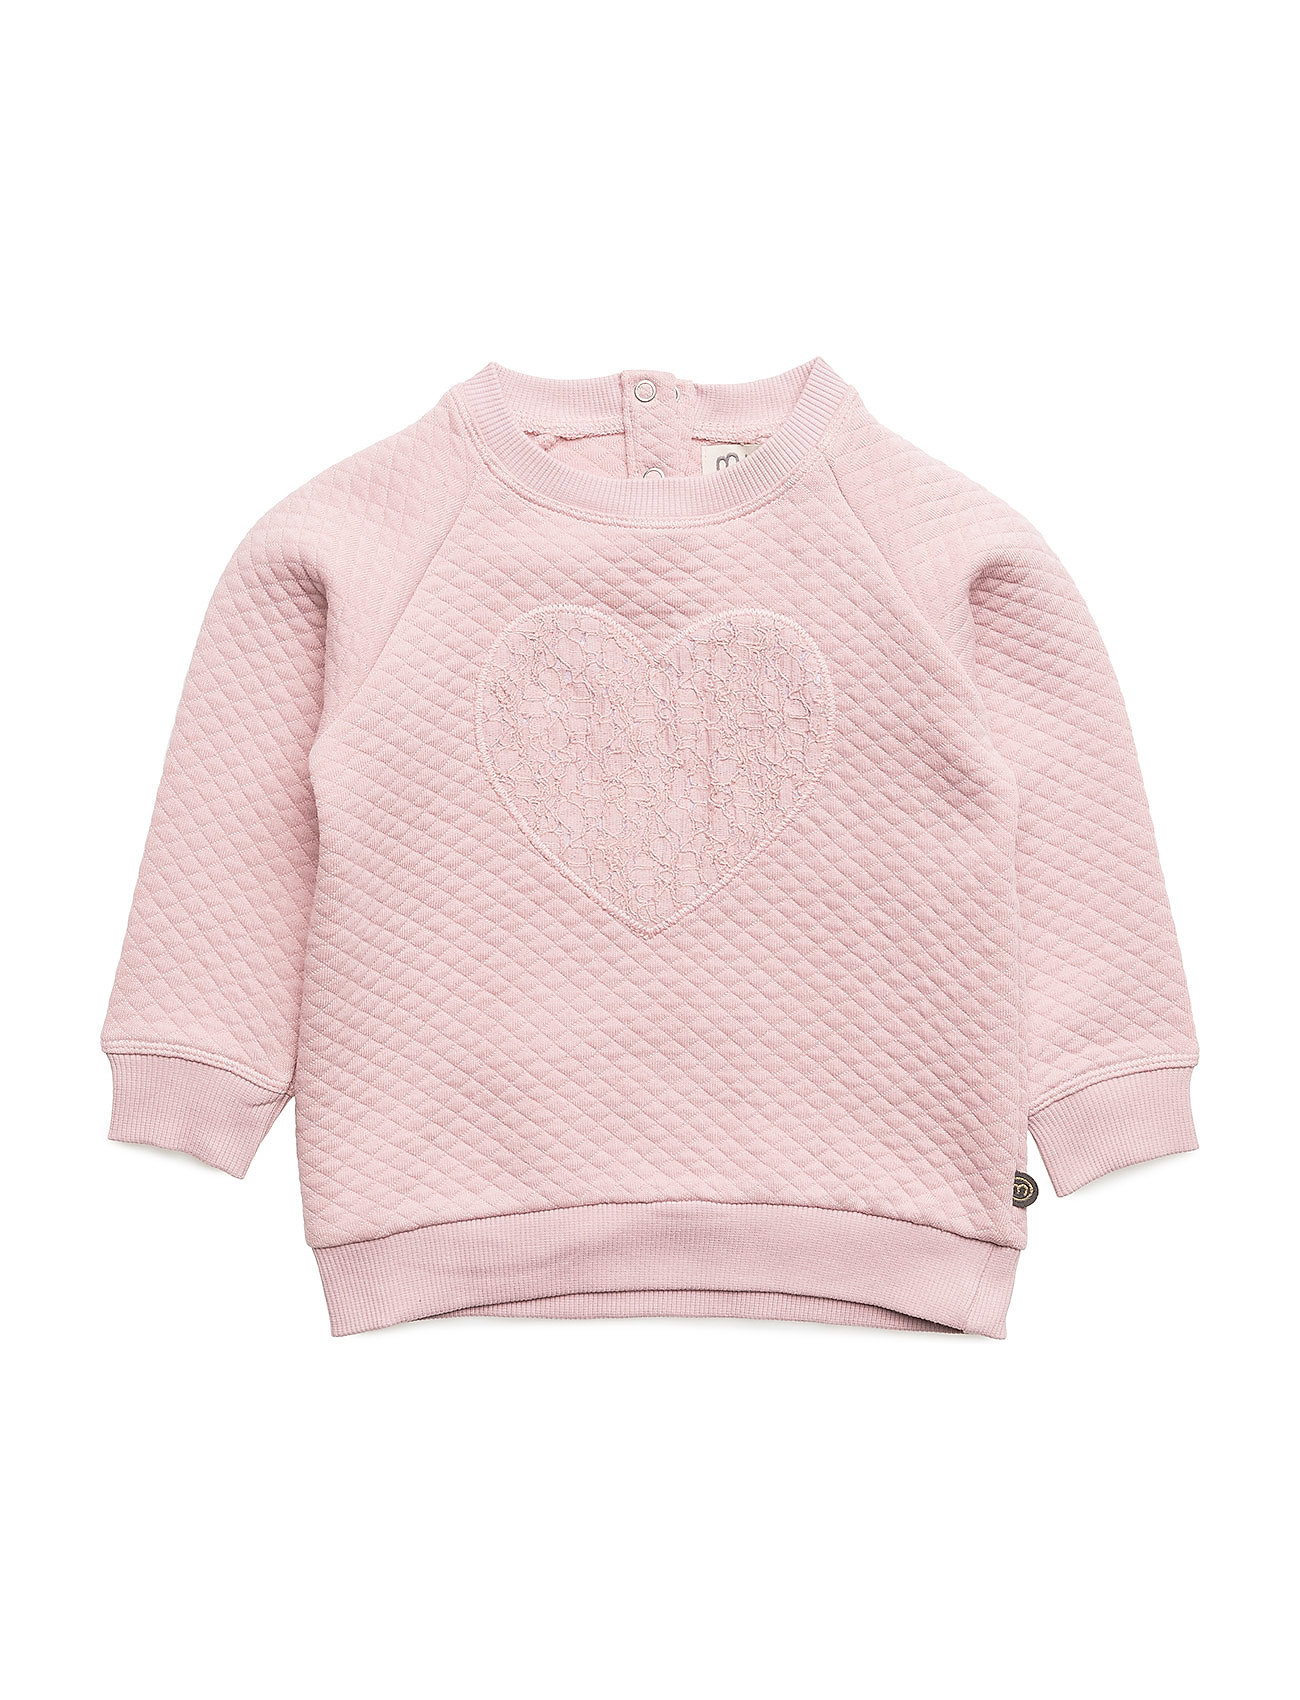 Pearl 99 - Sweat Shirt Quilted thumbnail